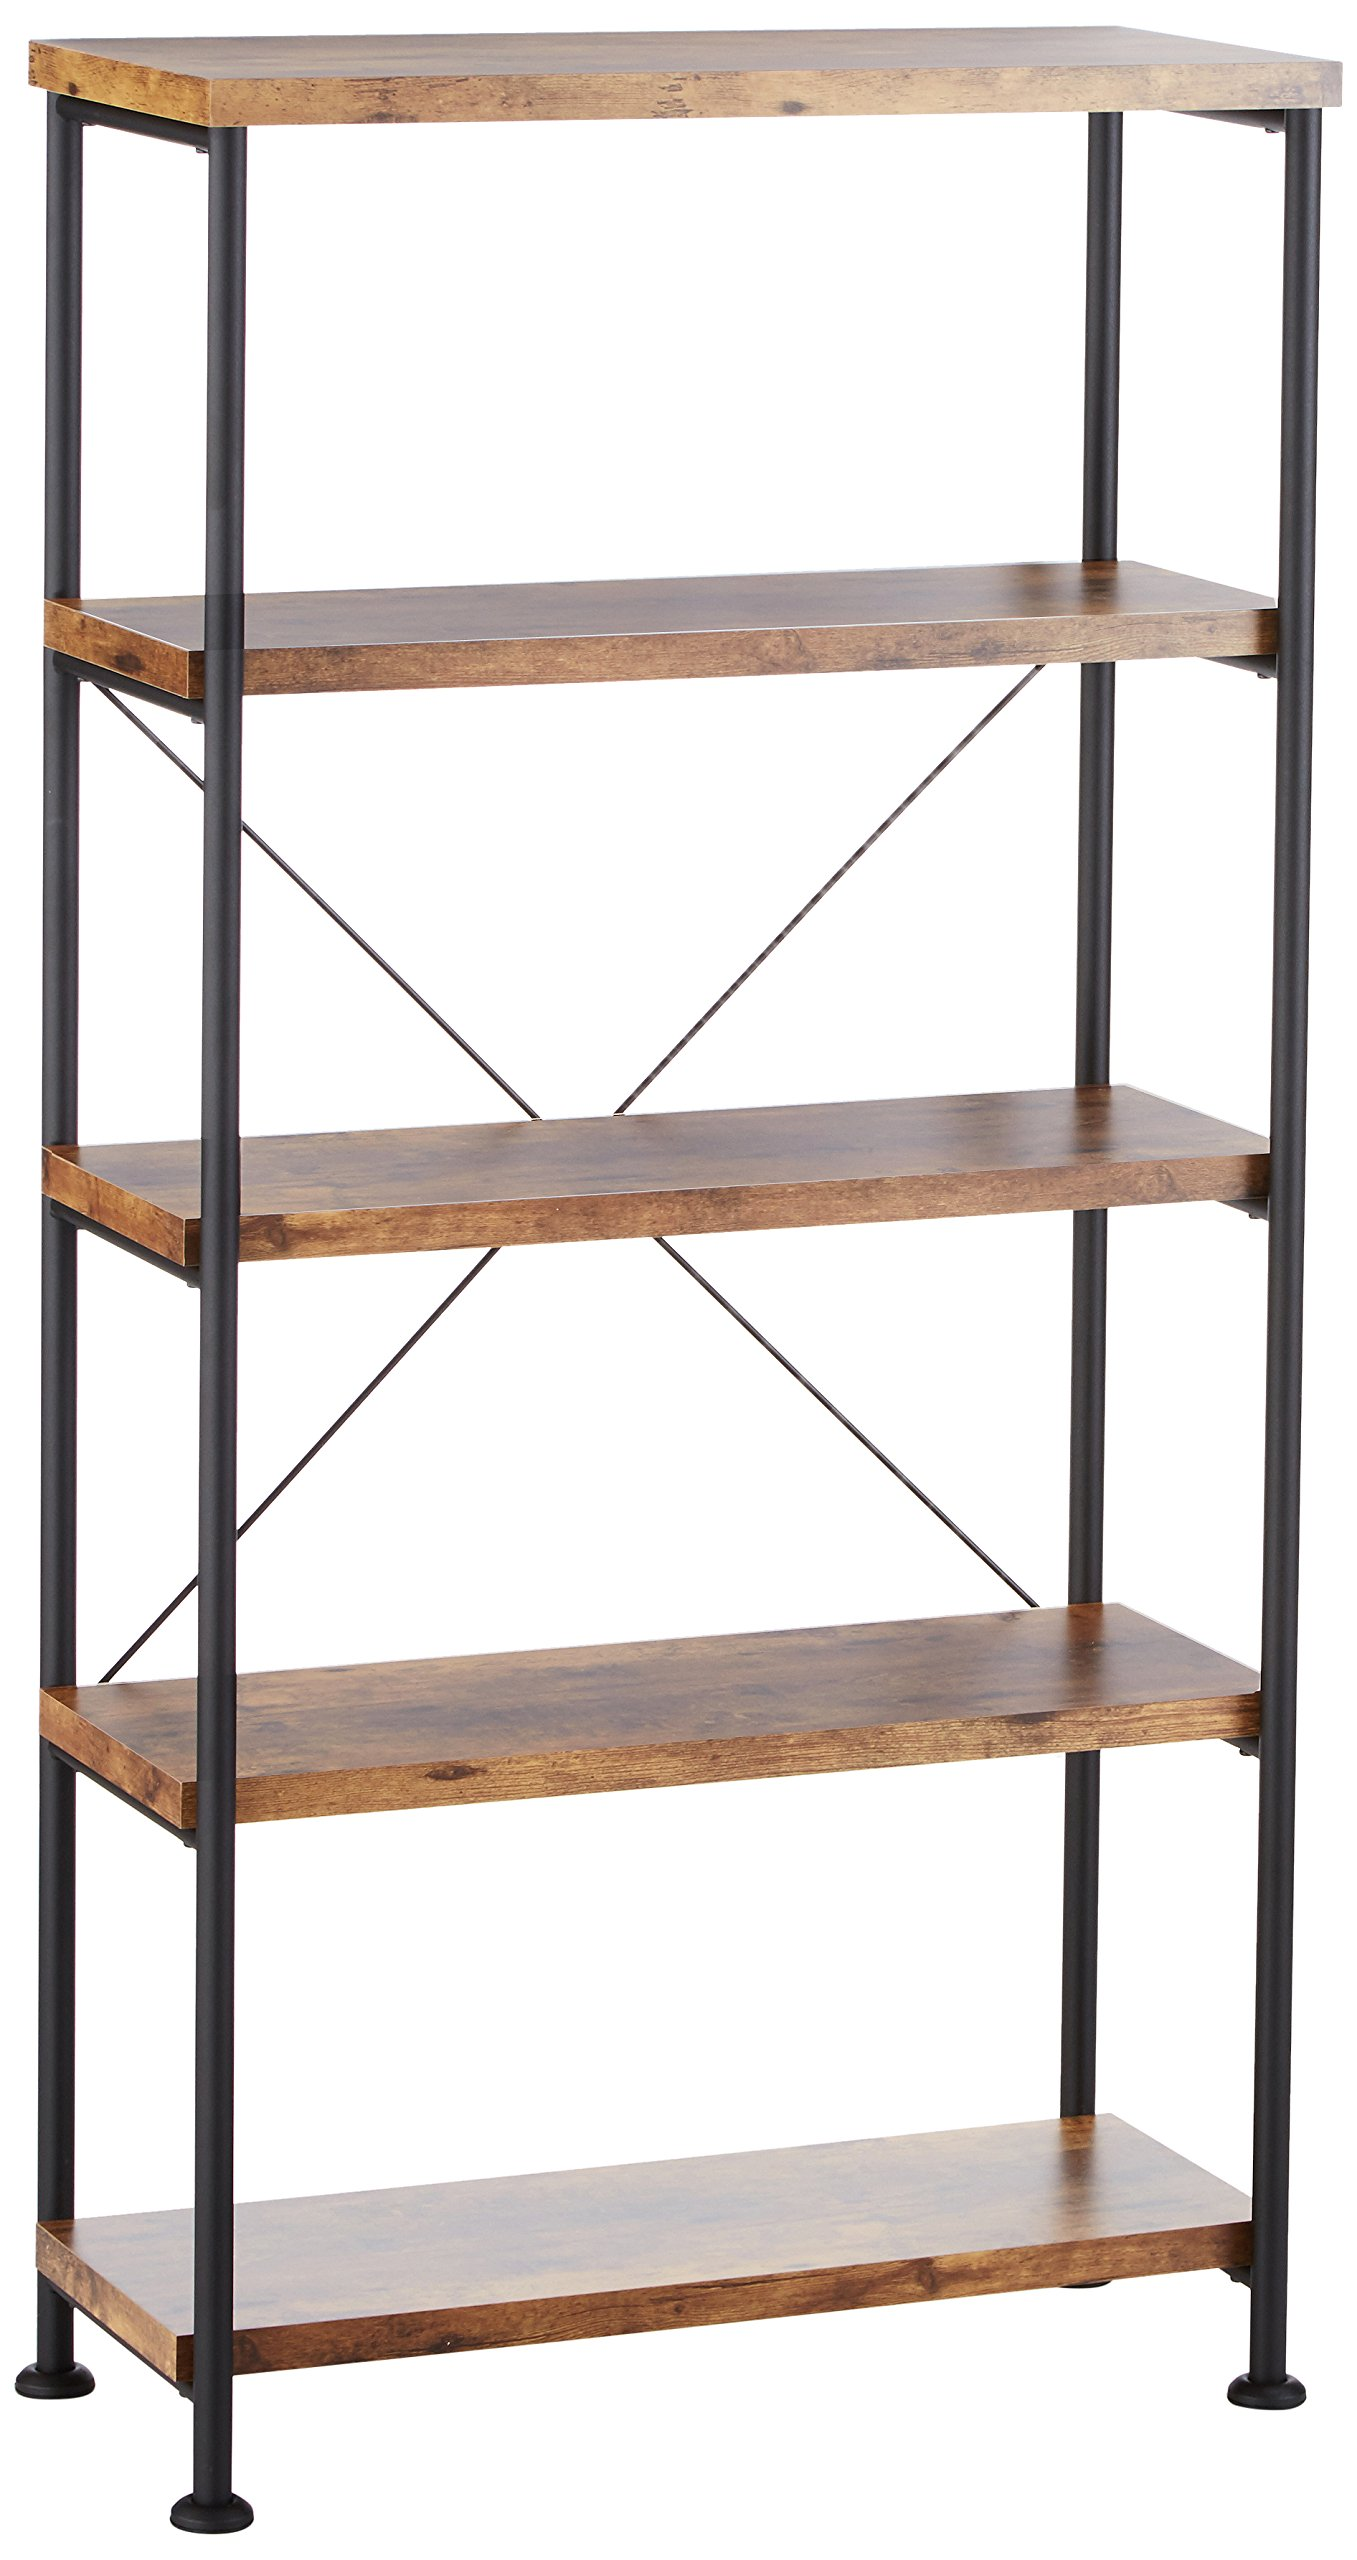 Coaster Home Furnishings Coaster 801542 Bookcase, Barritt Collection